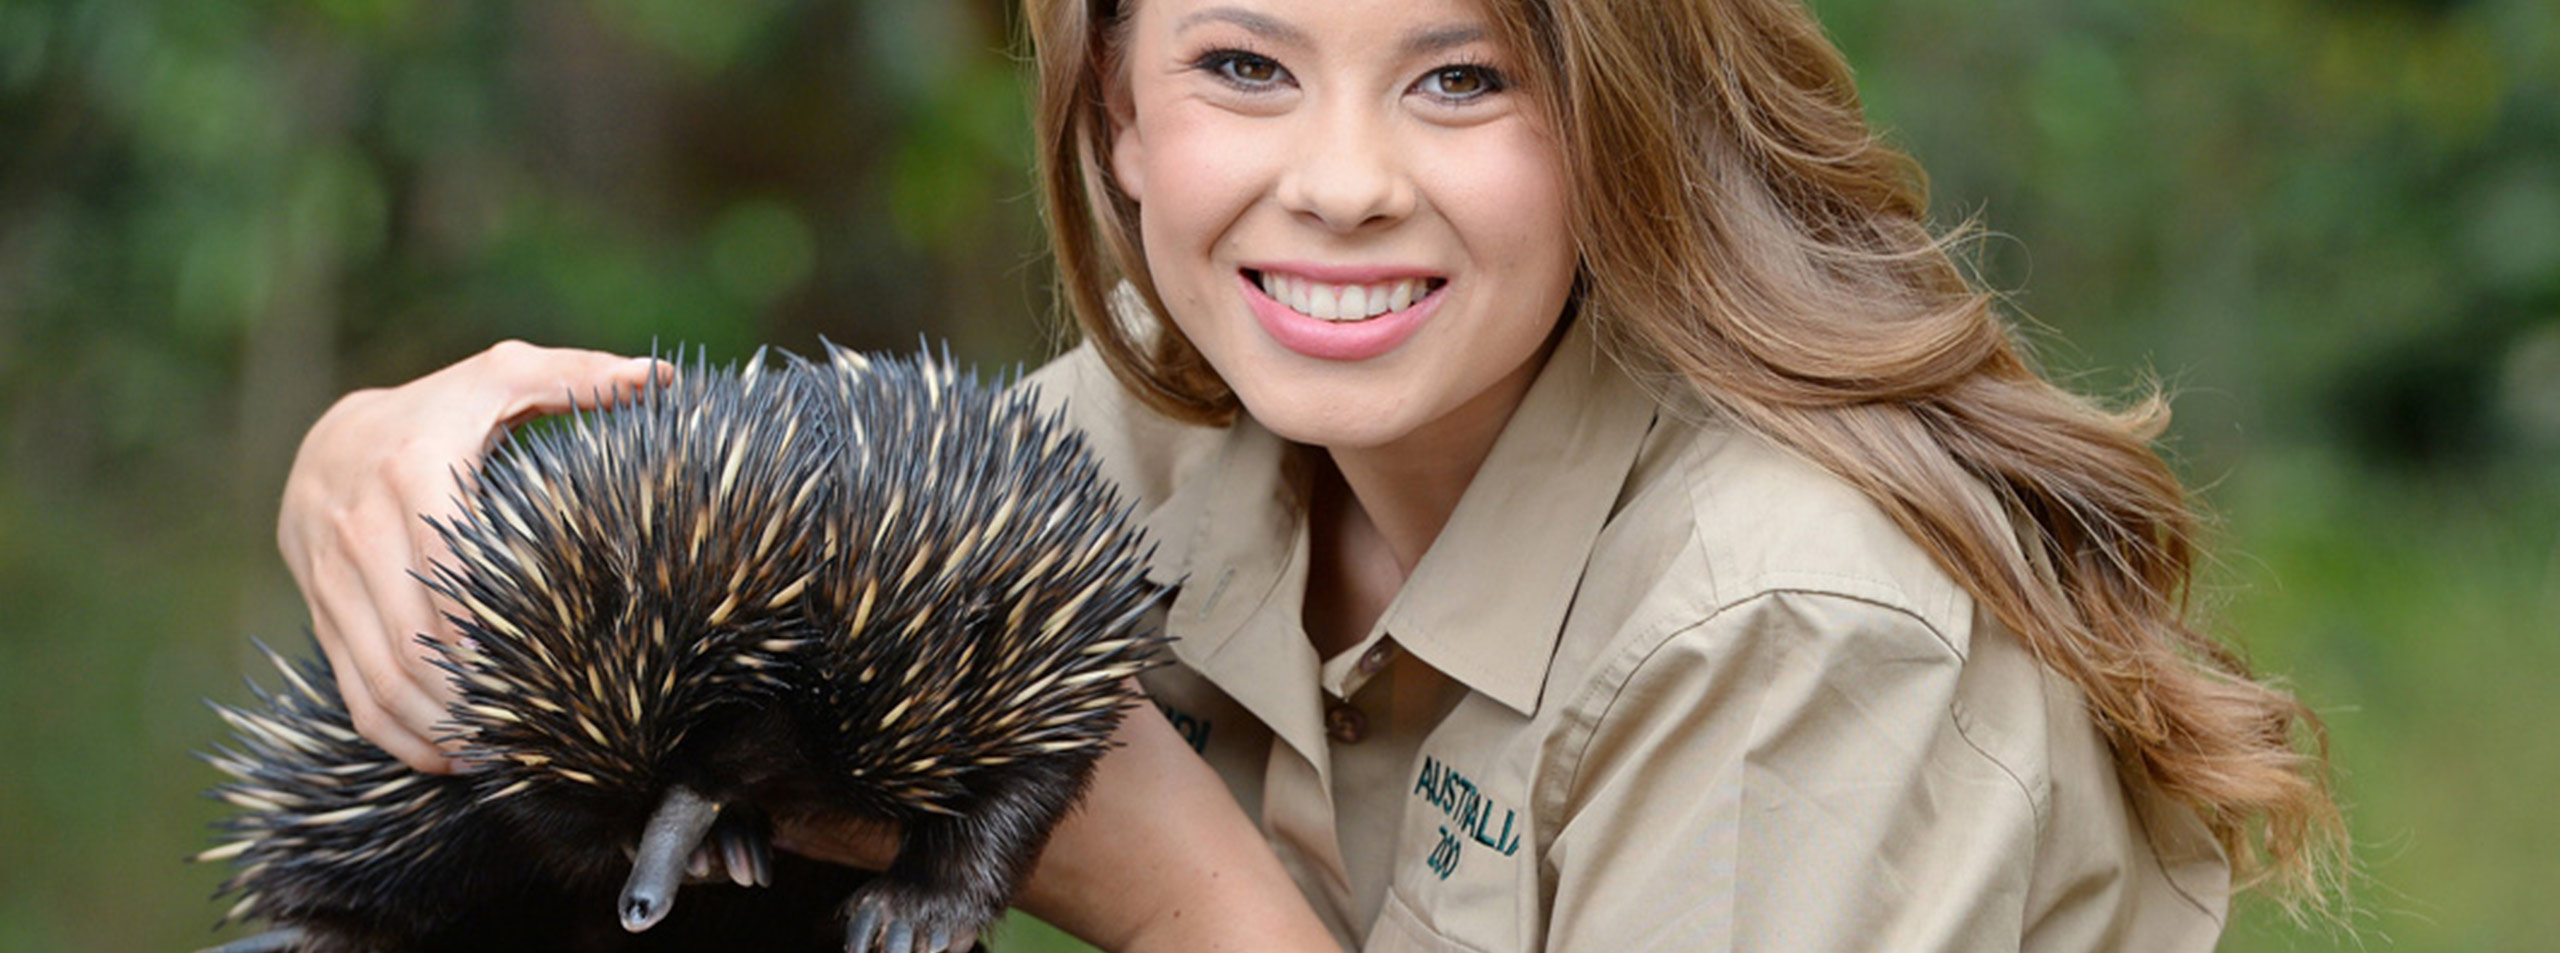 Bindi Irwin with Echidna, Australia Zoo